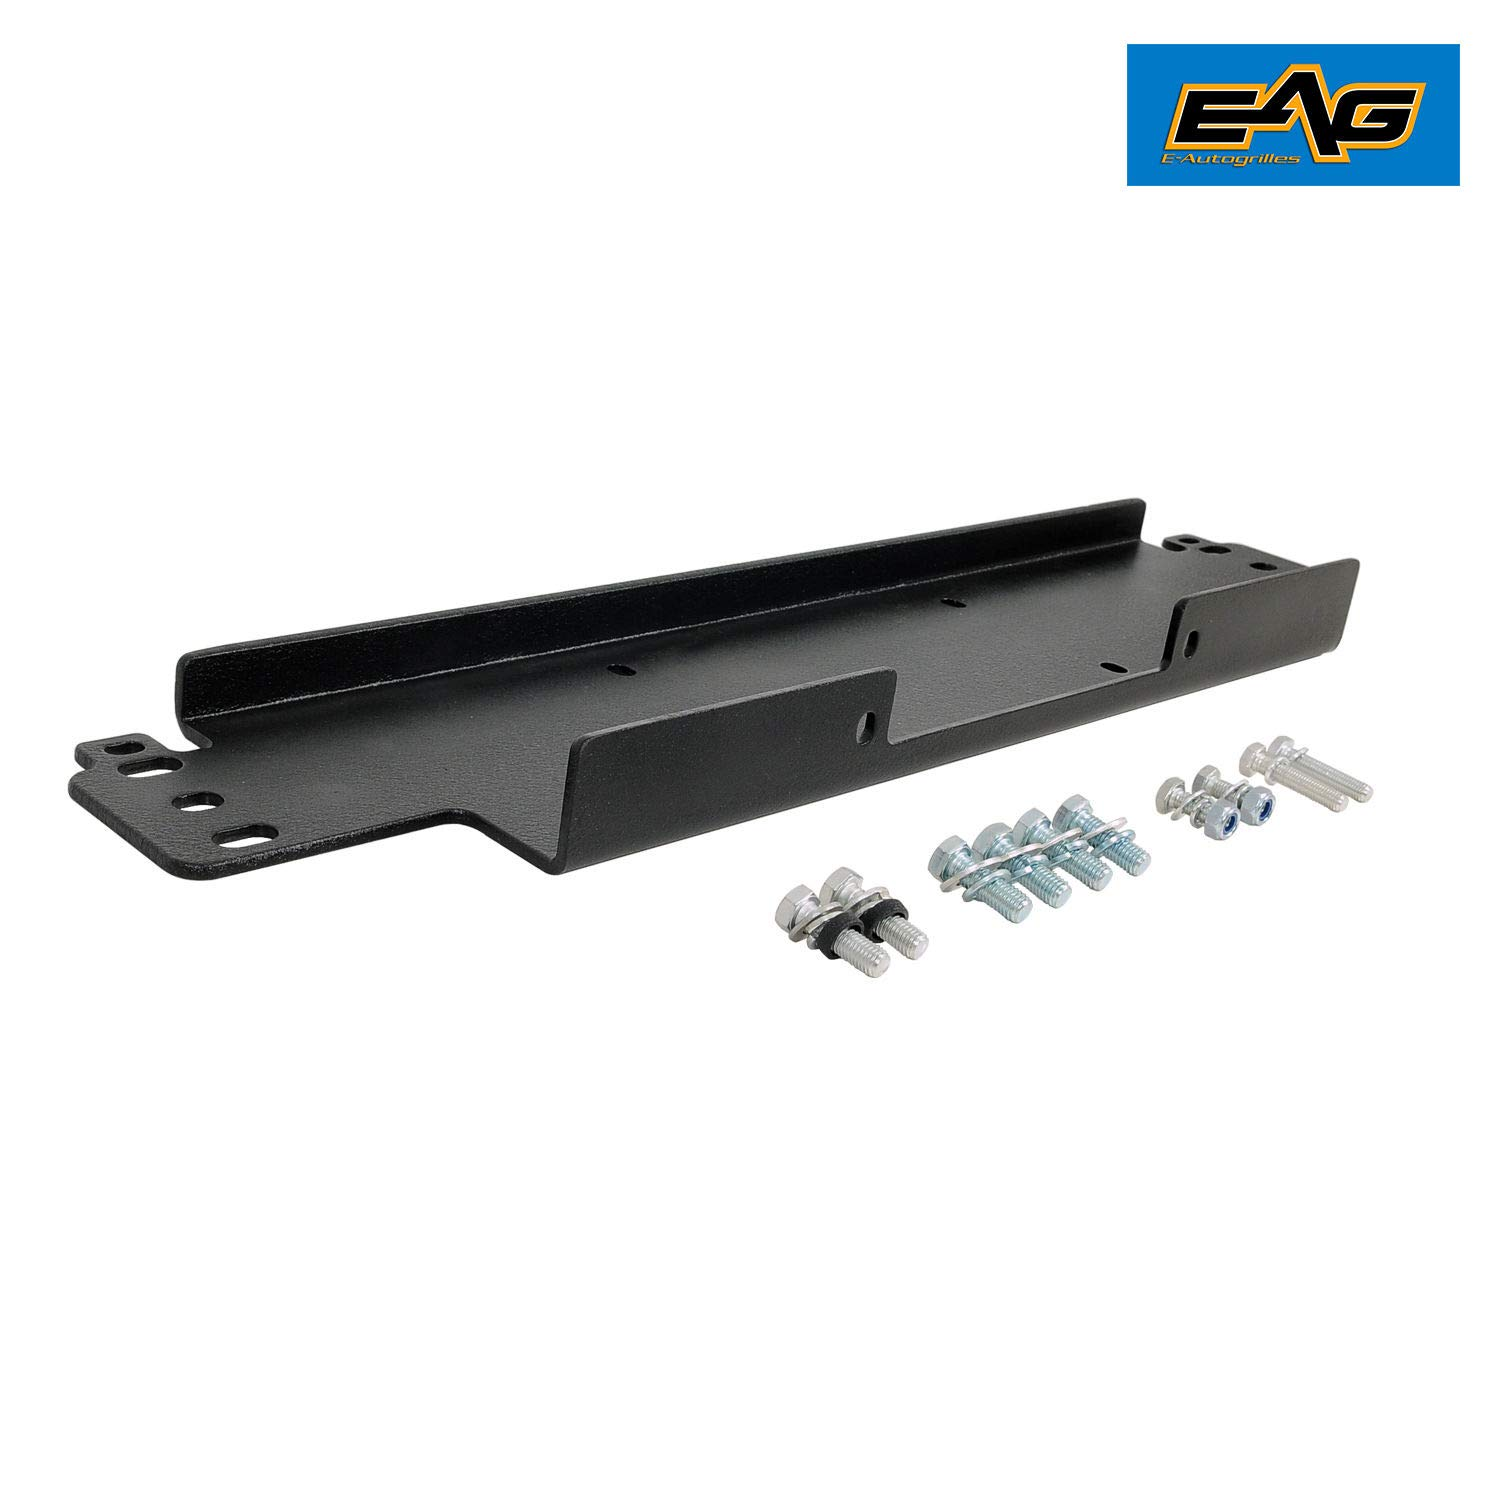 EAG Winch Mounting Plate 12000 lbs Capacity Fit for 87-06 Jeep Wrangler TJ//YJ